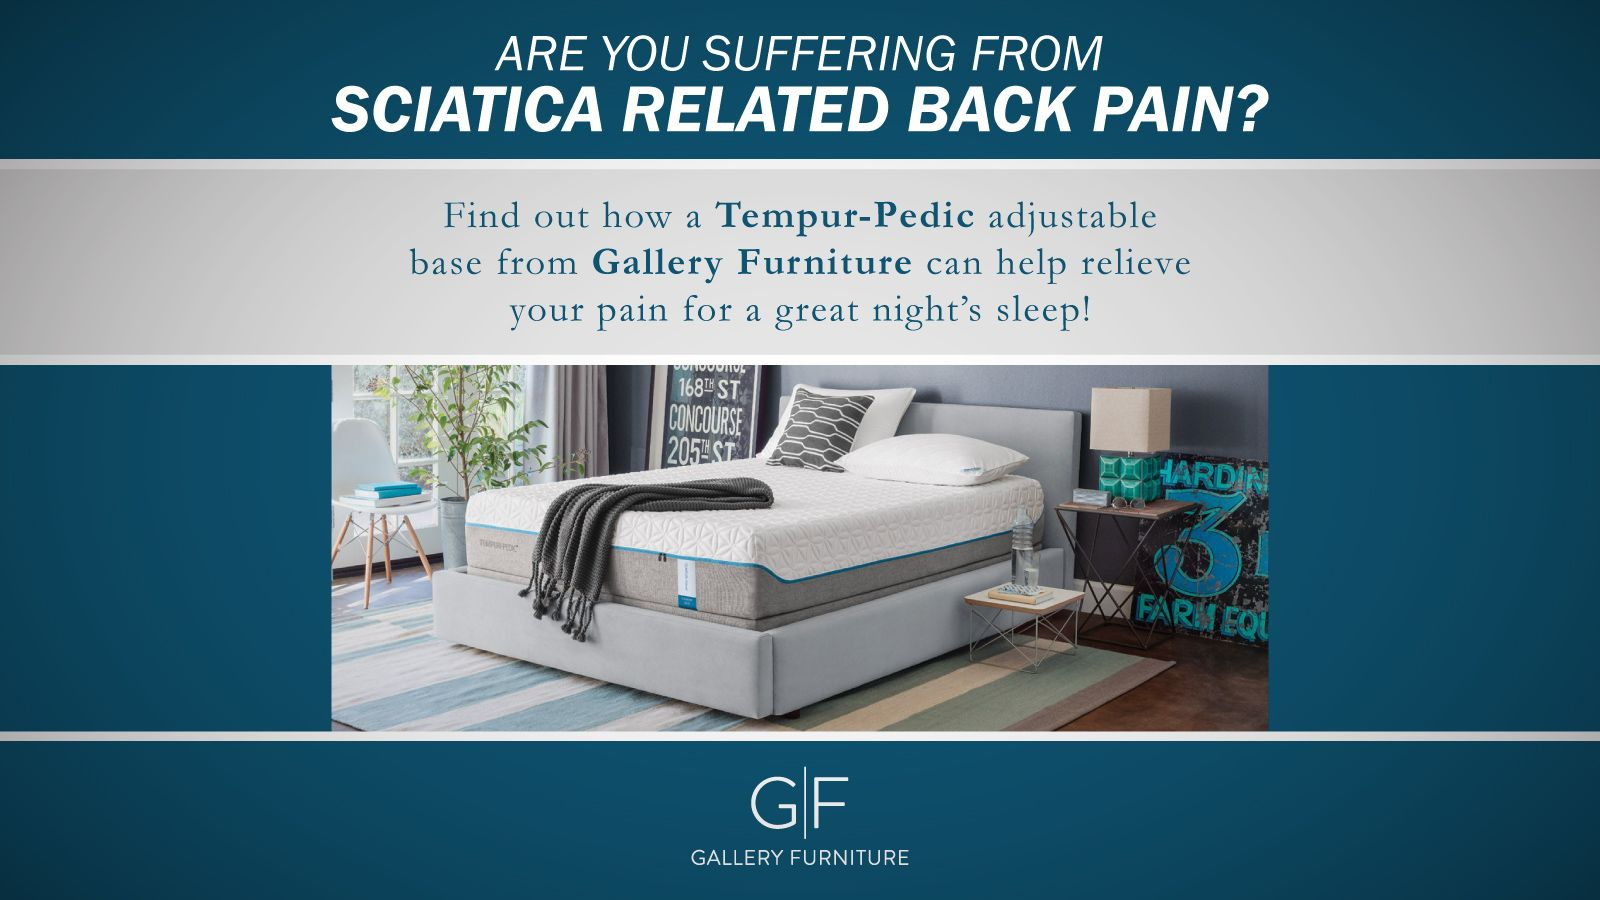 Dealing With Back Pain Then Get An Adjustable Bed From Gallery Furniture